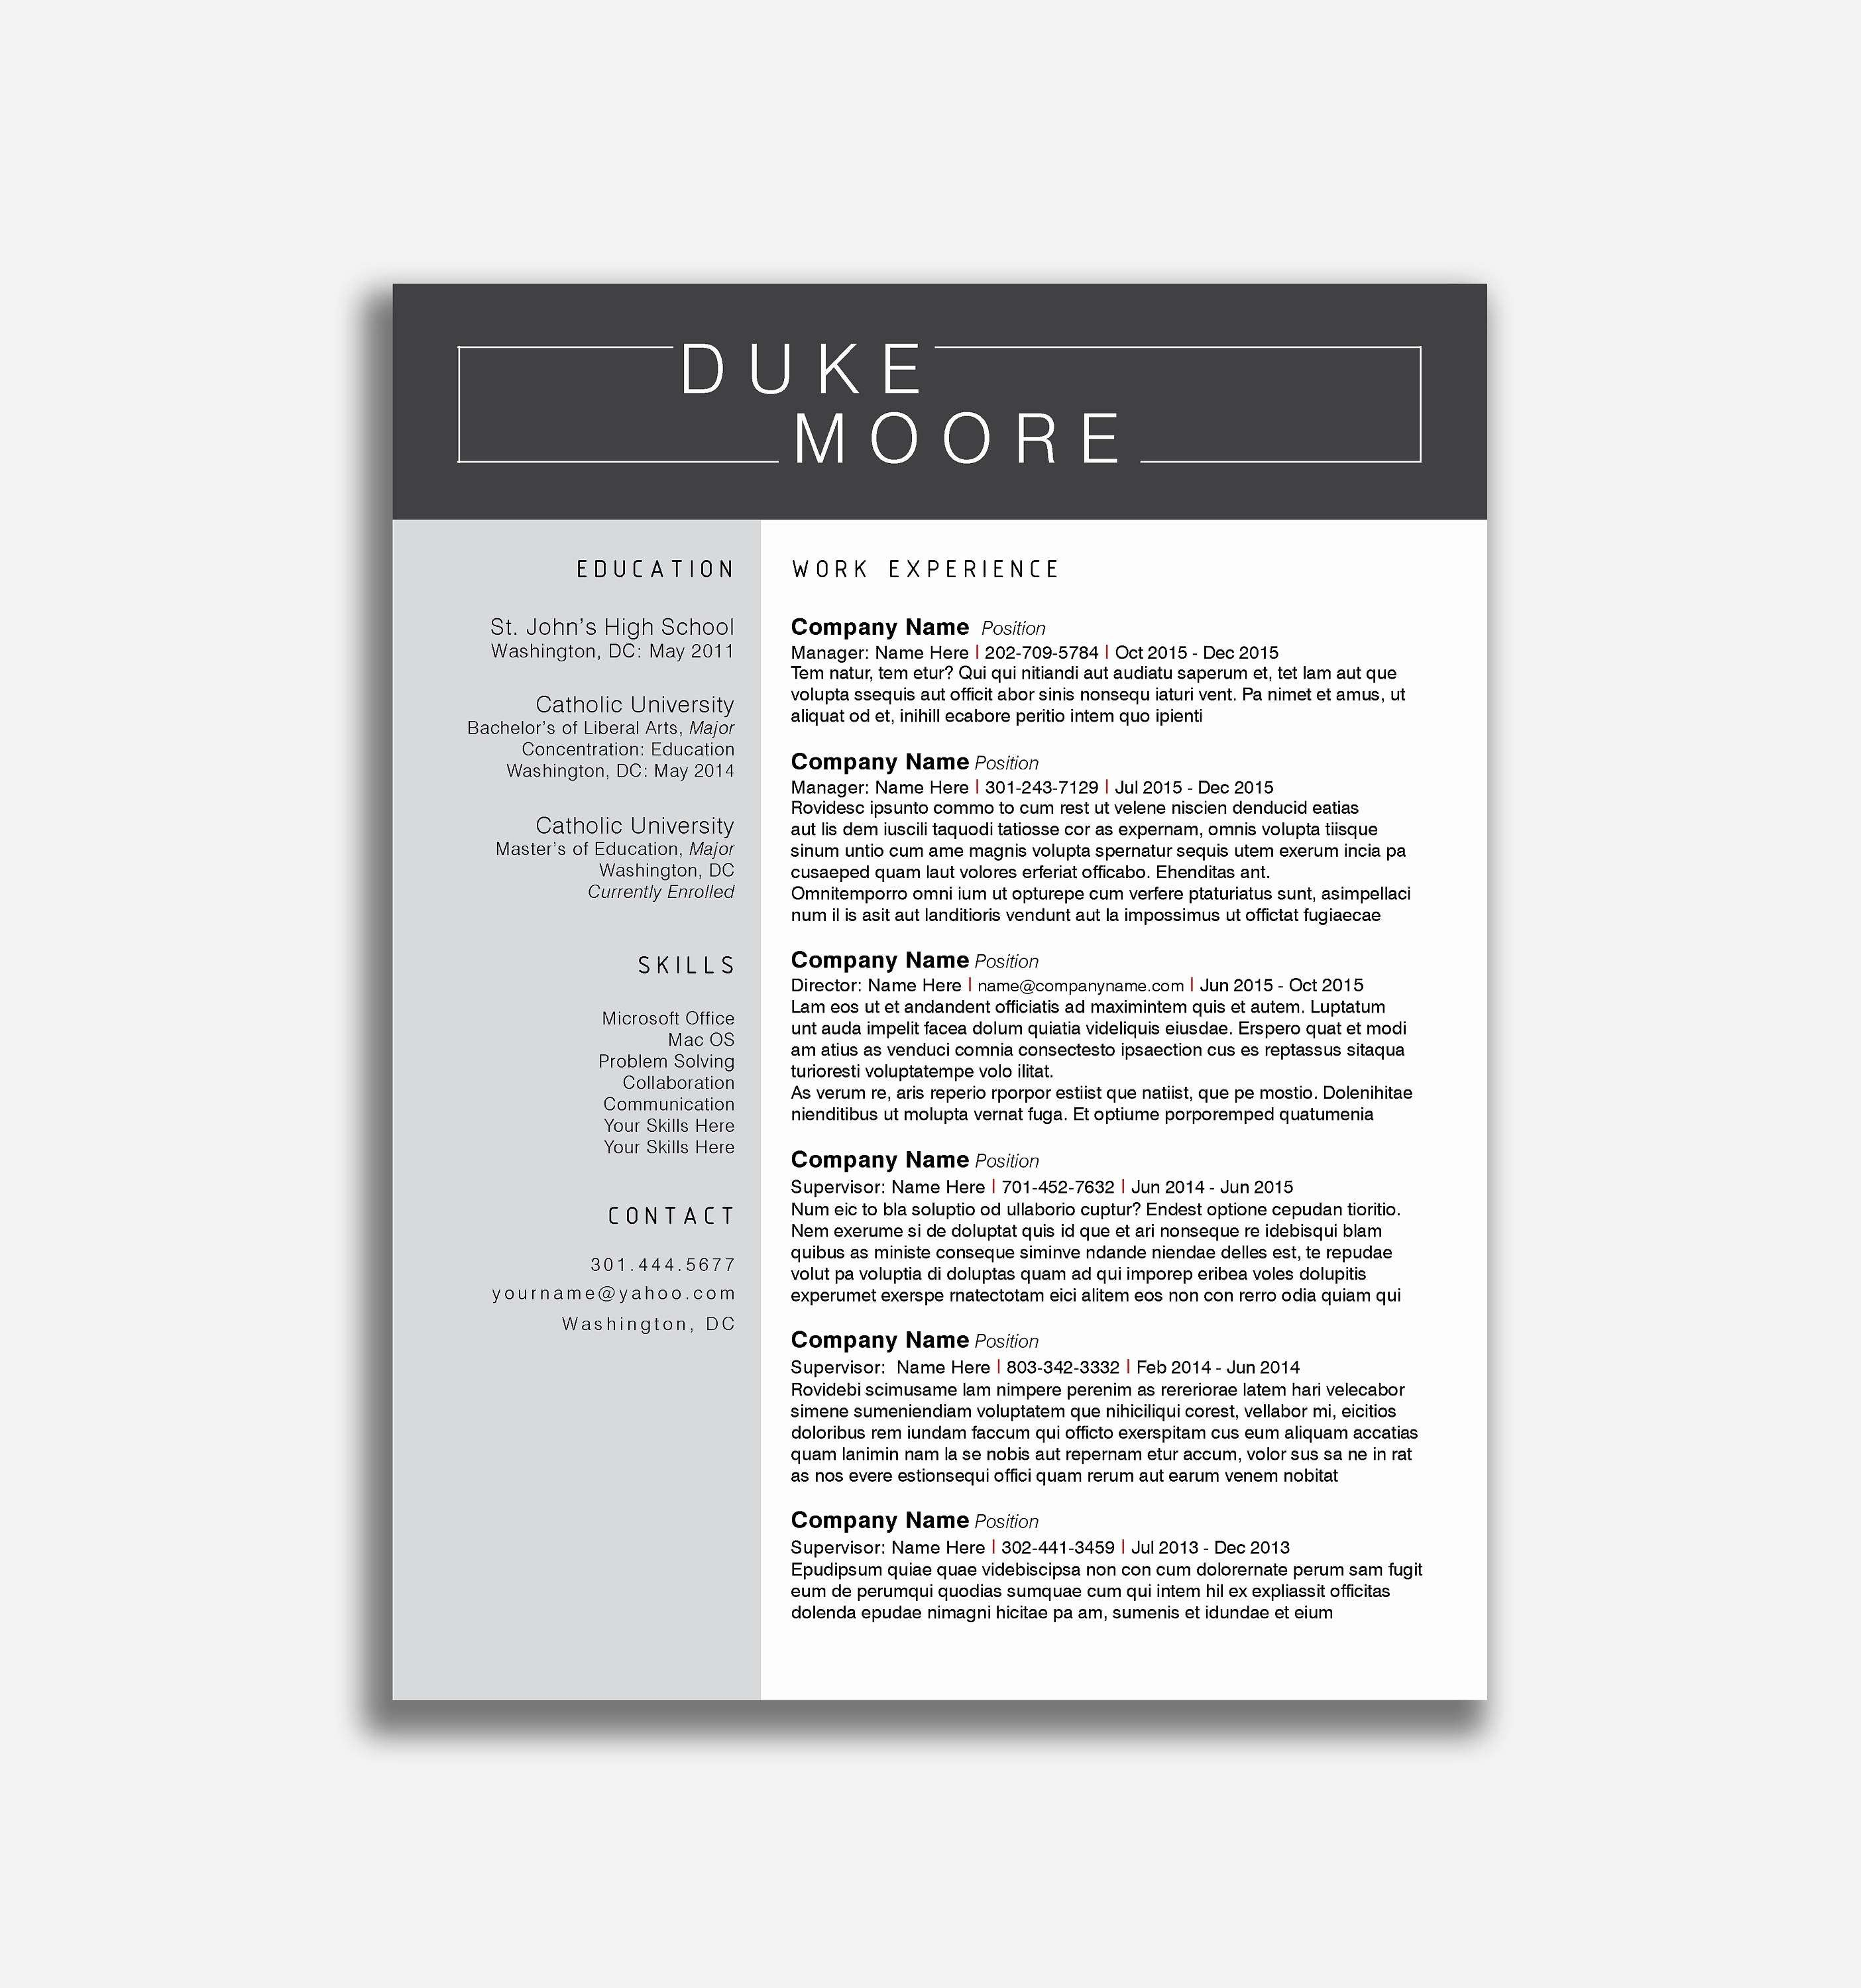 Recent College Graduate Resume Template - College Grad Resume Lovely 9 Exhilarate Sample Resumes for Recent